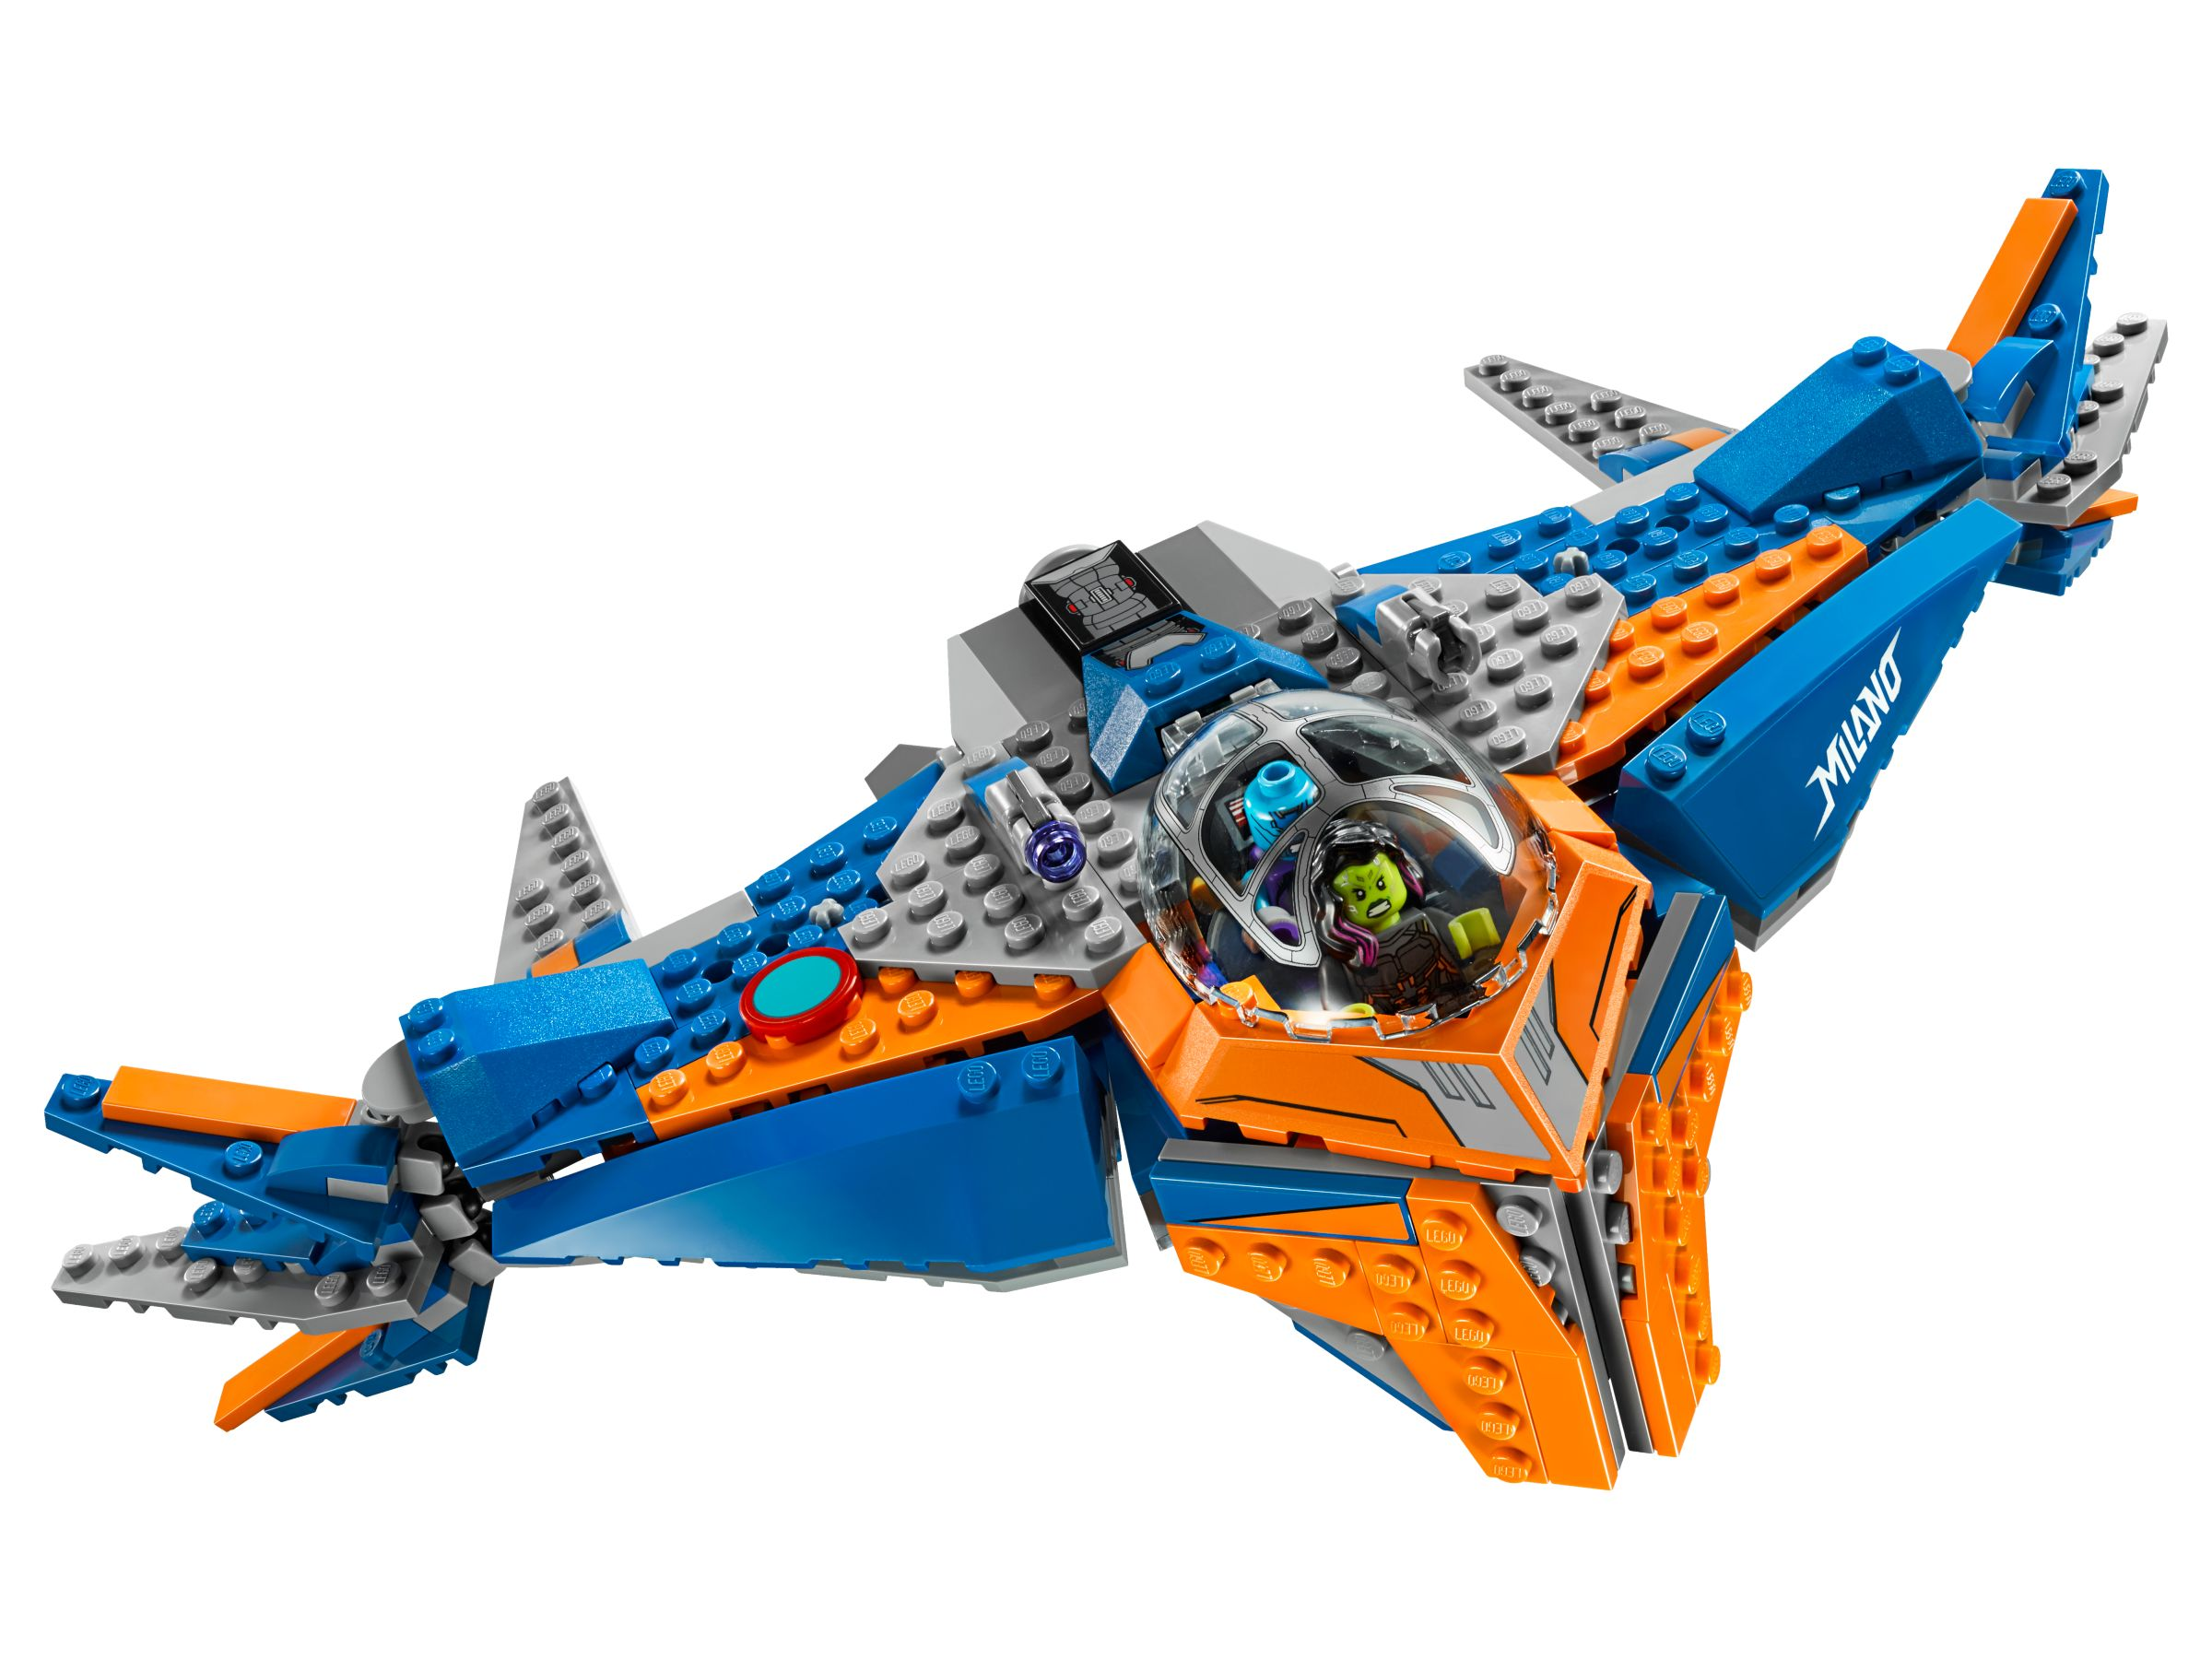 LEGO Super Heroes 76081 Guardians of the Galaxy - The Milano vs. The Abilisk LEGO_76081_alt2.jpg